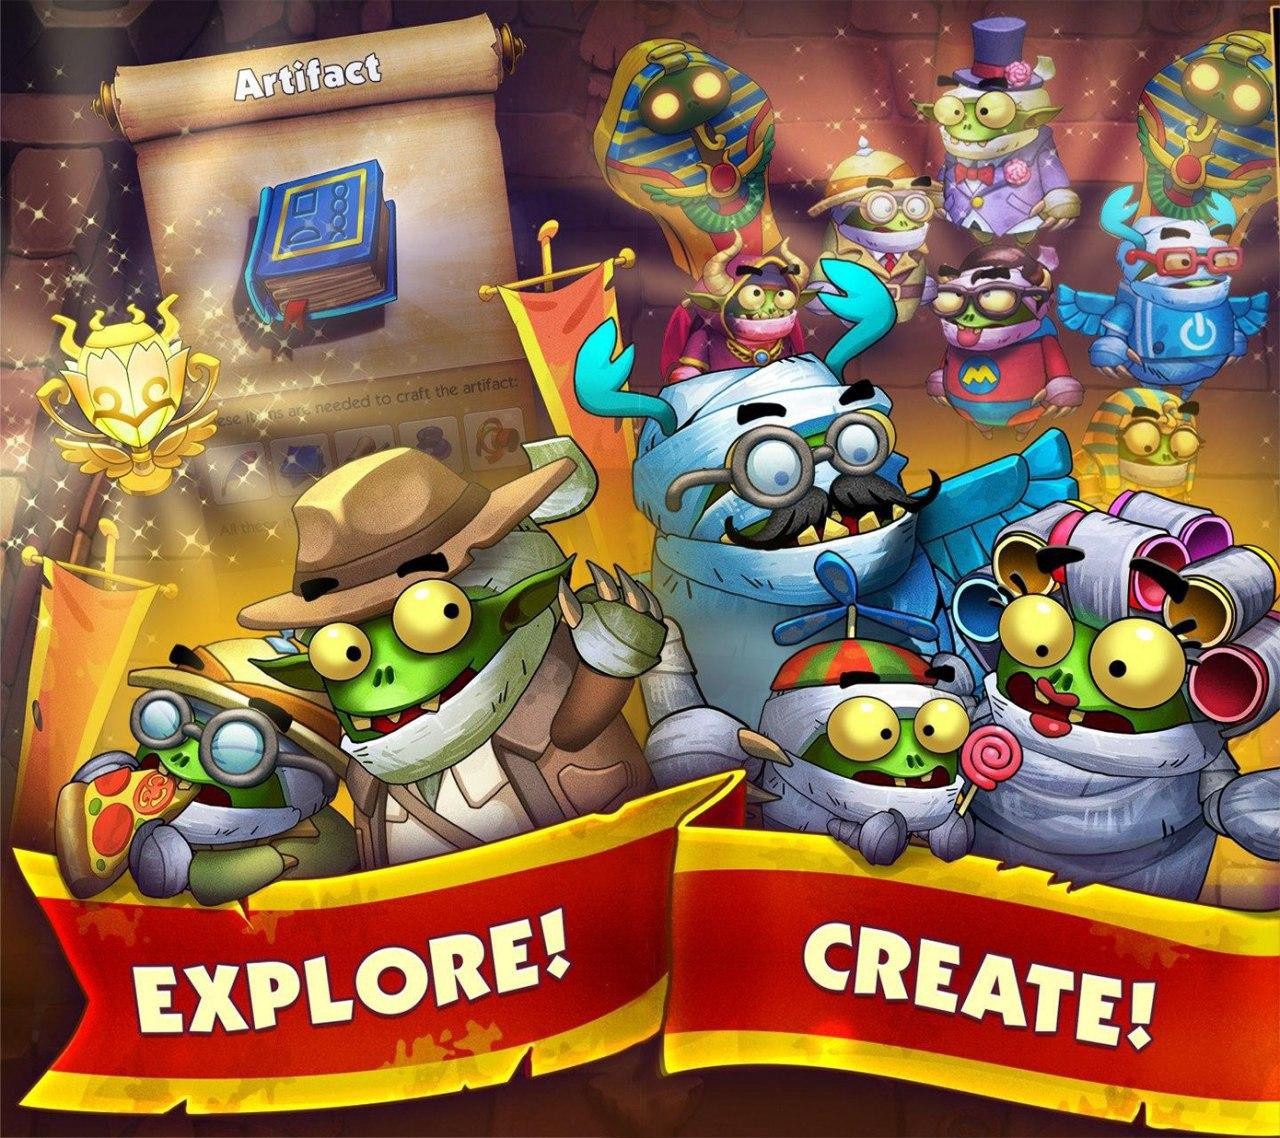 Illustration is provided by the developers of the game Monster Hustle